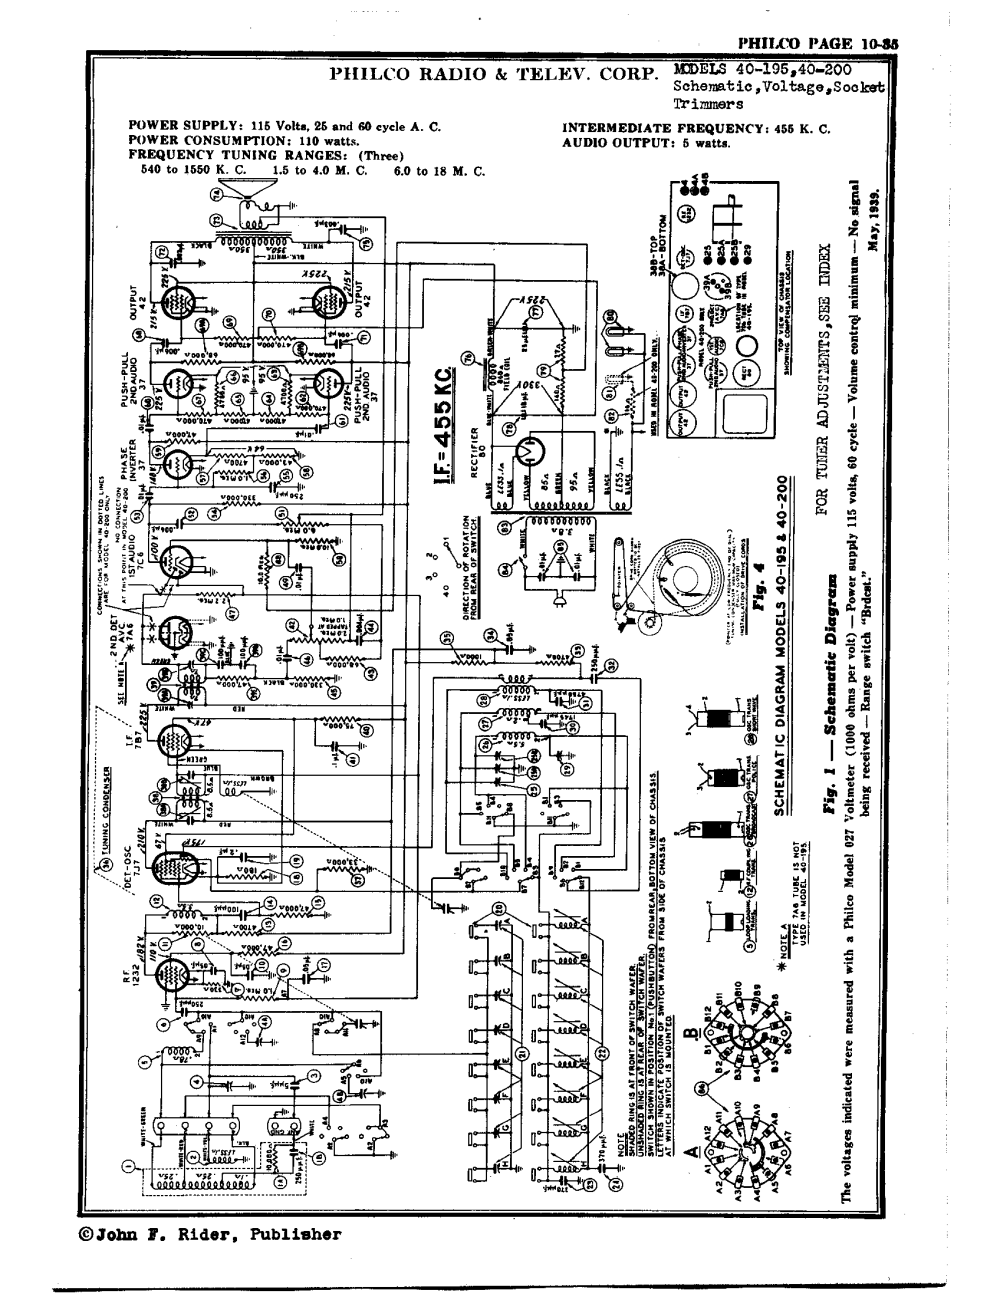 medium resolution of philco radio television corp 40 195 antique electronic supply philco transistor radio philco radio schematics